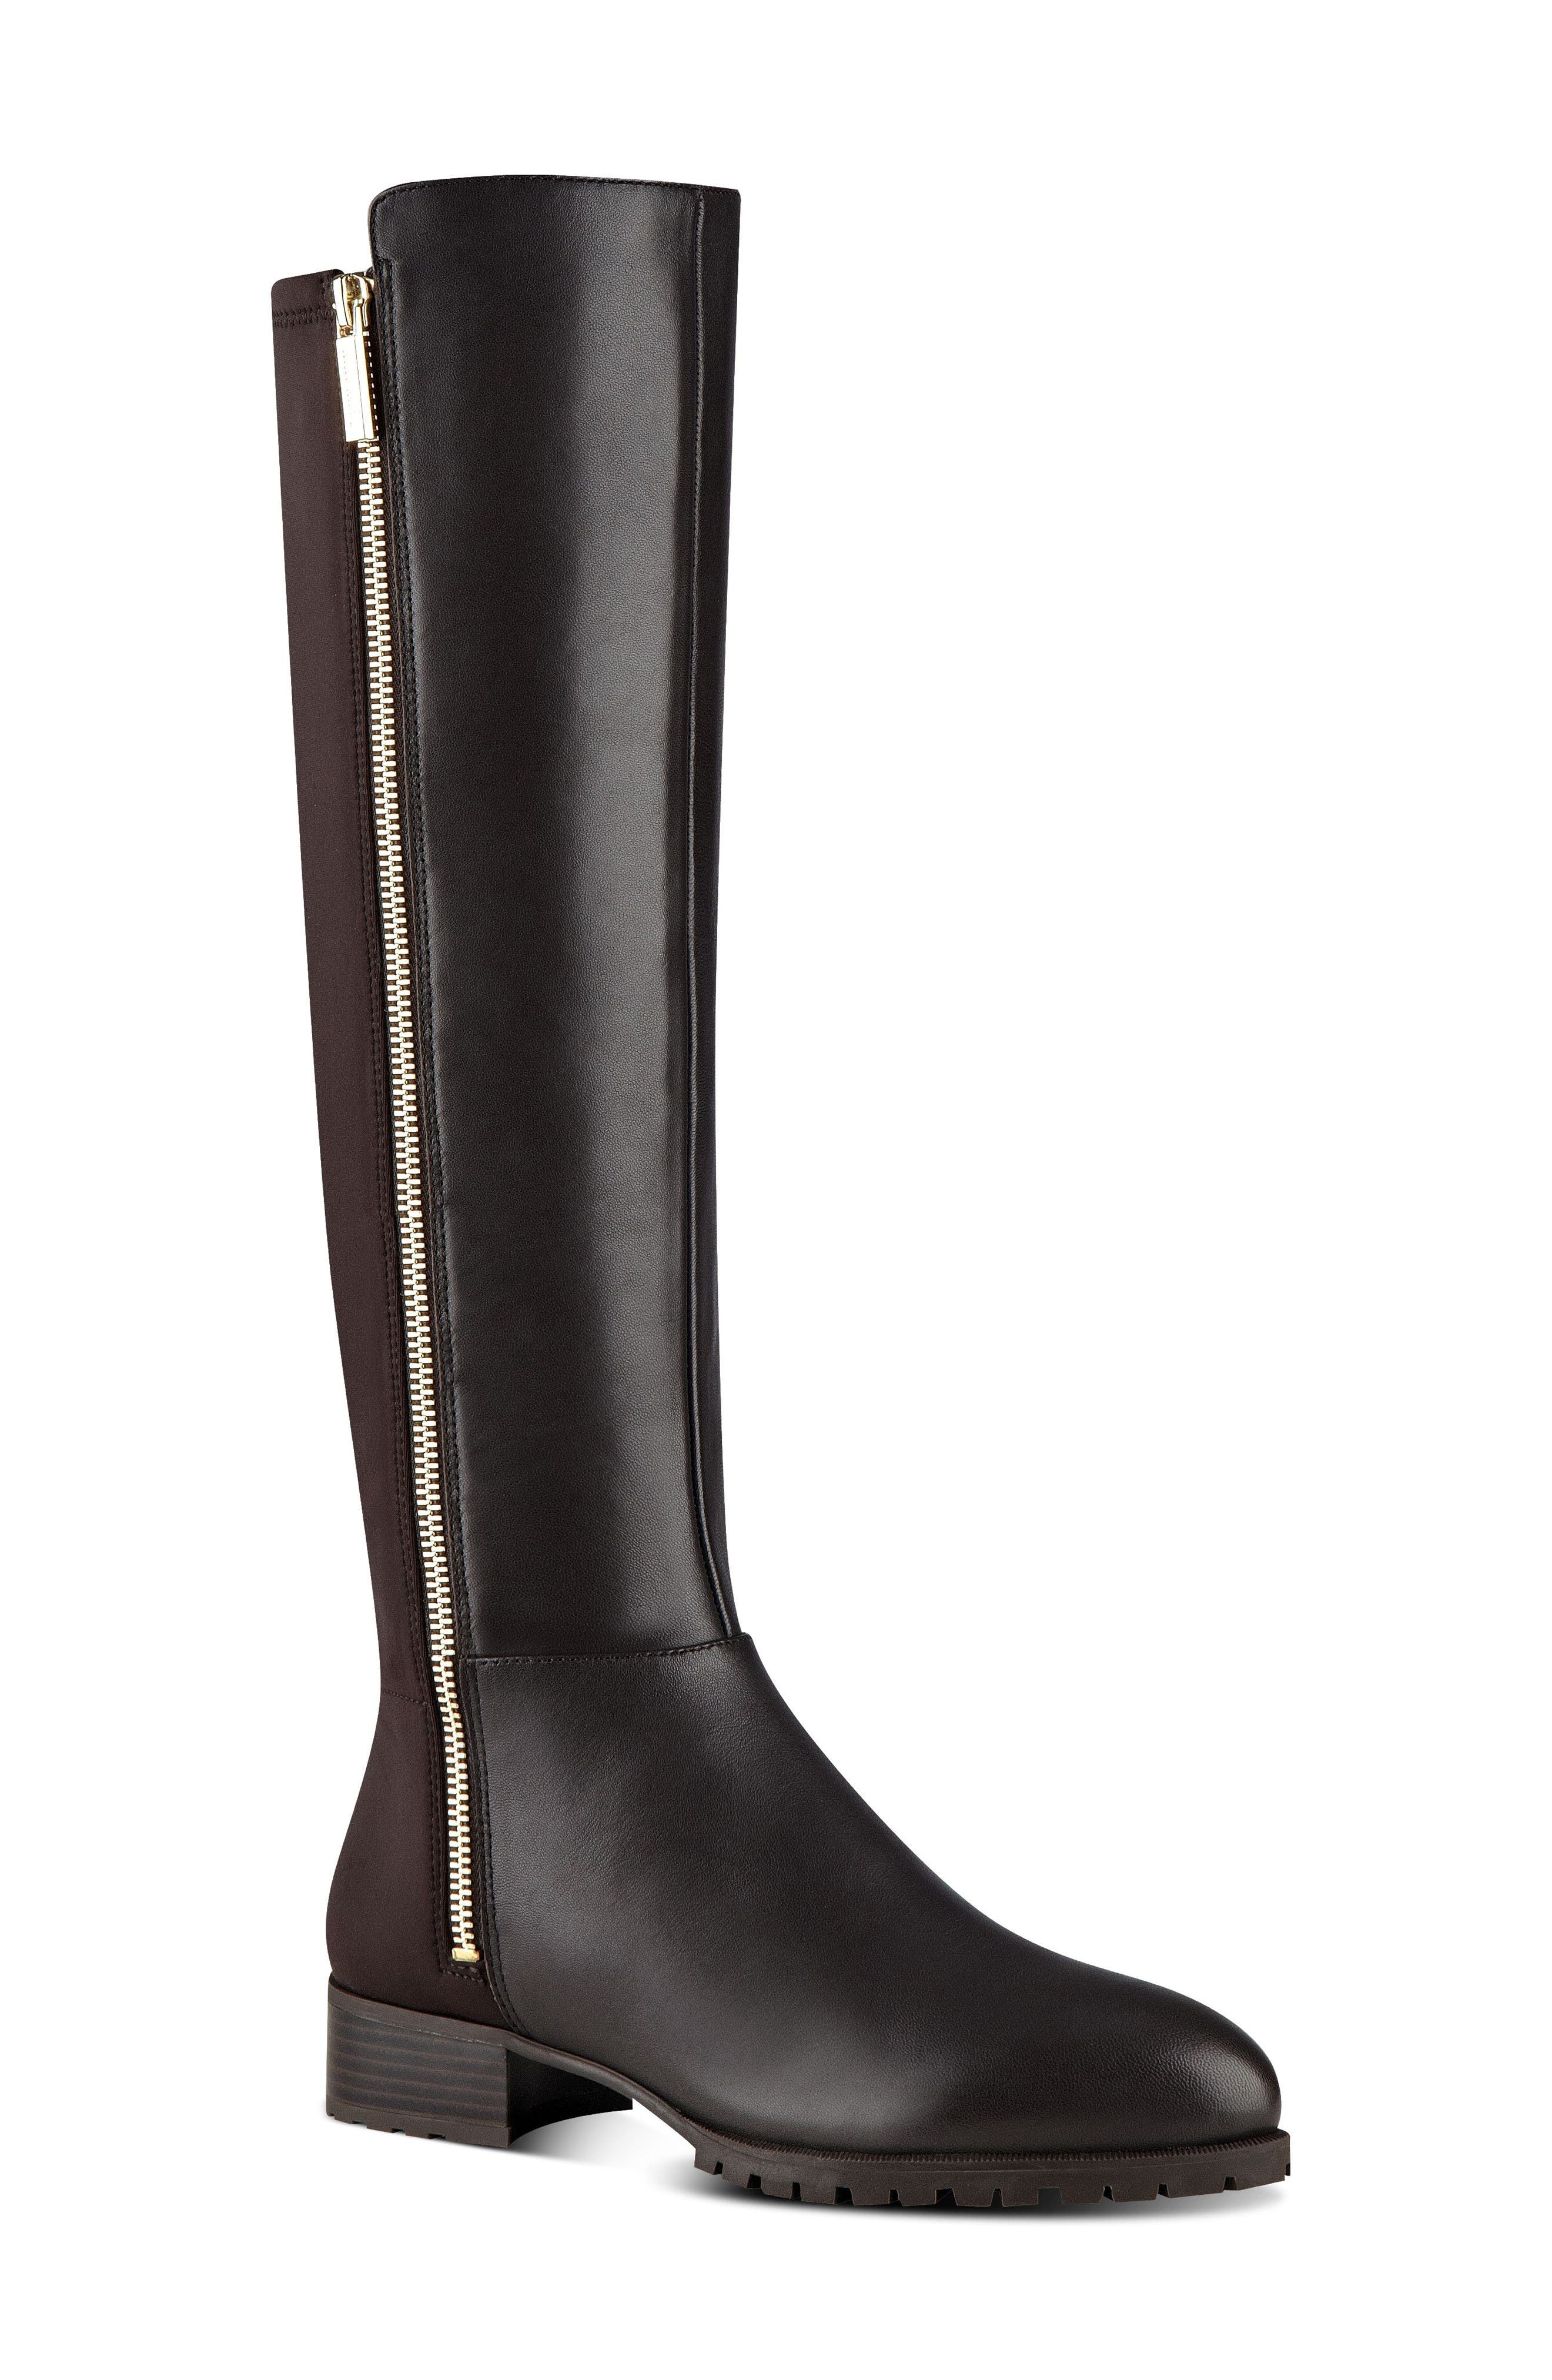 Main Image - Nine West 'Legretto' Riding Boot (Women)